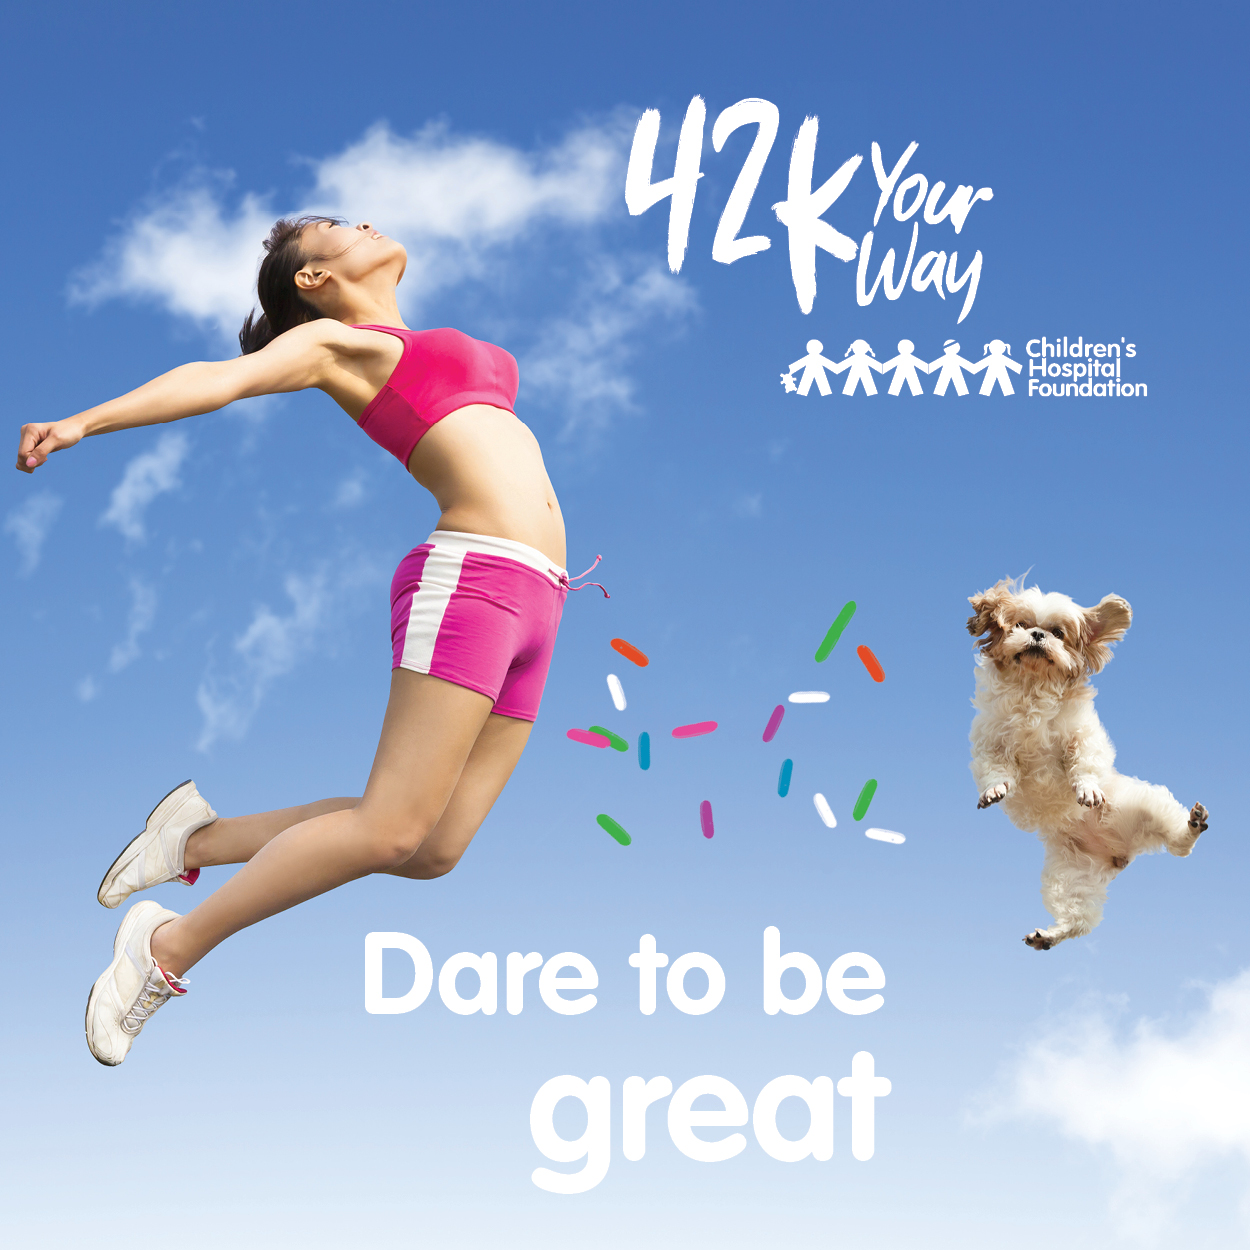 42k Your Way - Dare to Be